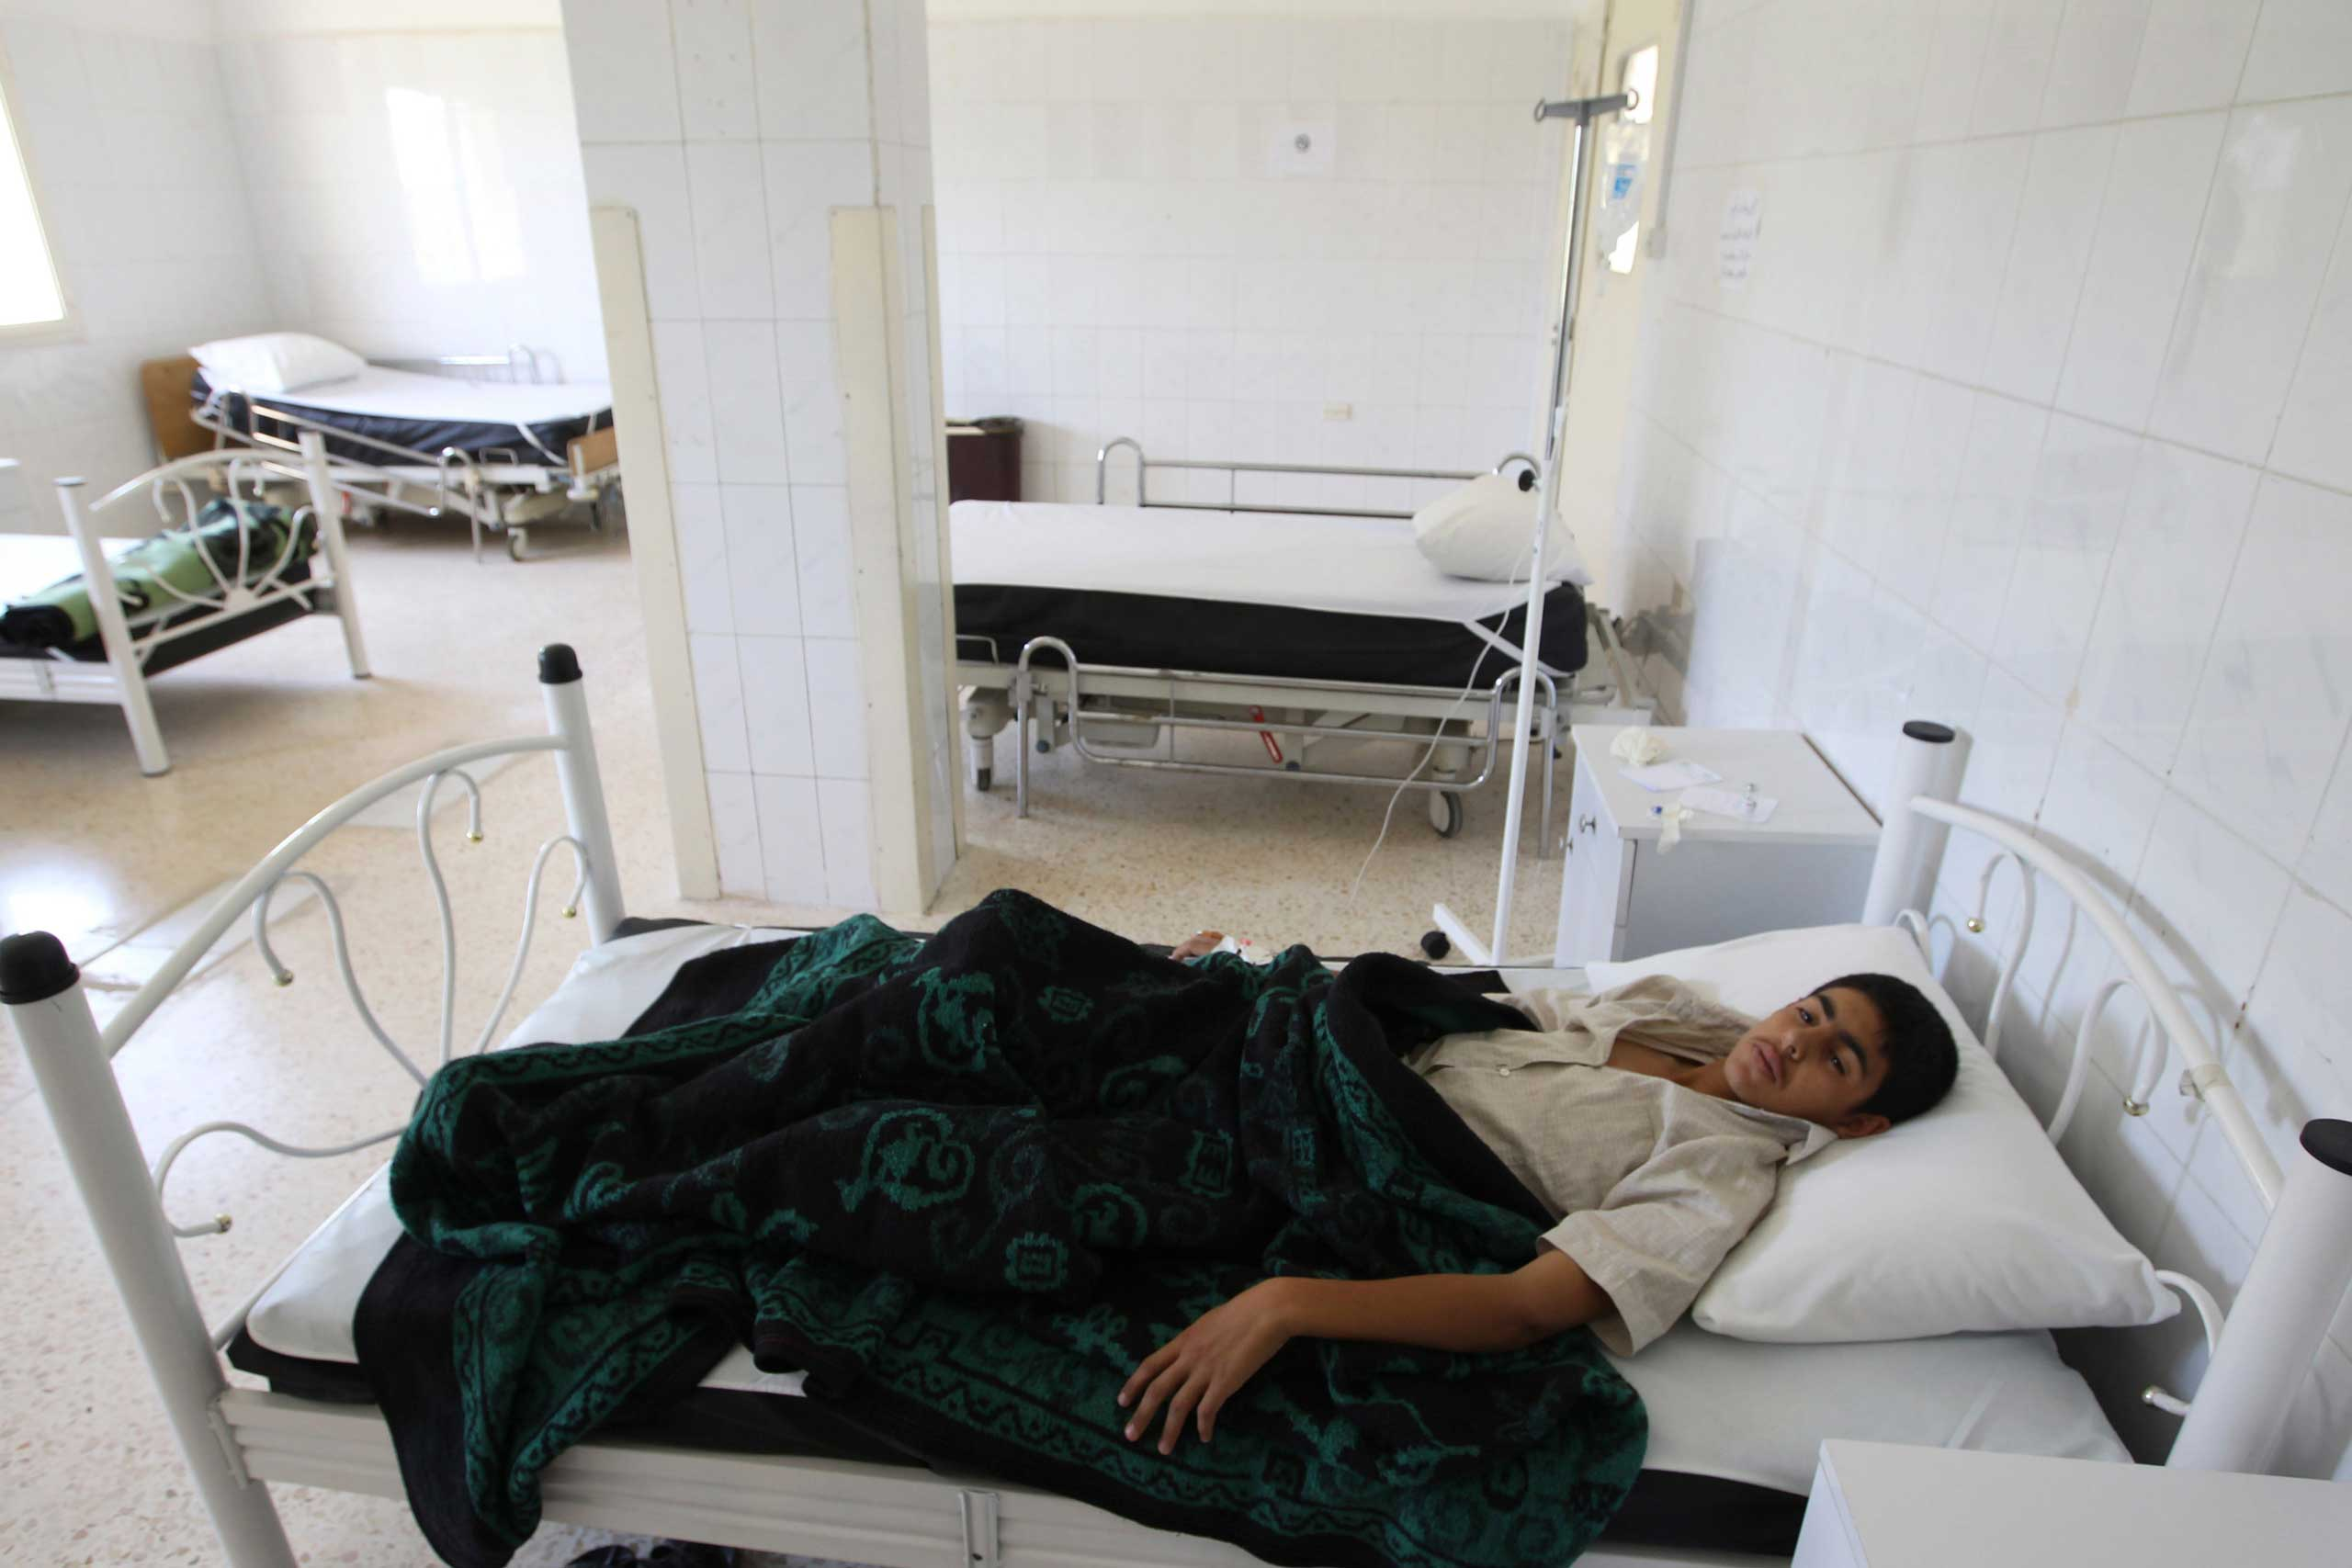 A boy infected by typhoid from polluted water, lies at a hospital in al-Qouniya village in Idlib, Syria, May 27, 2013.